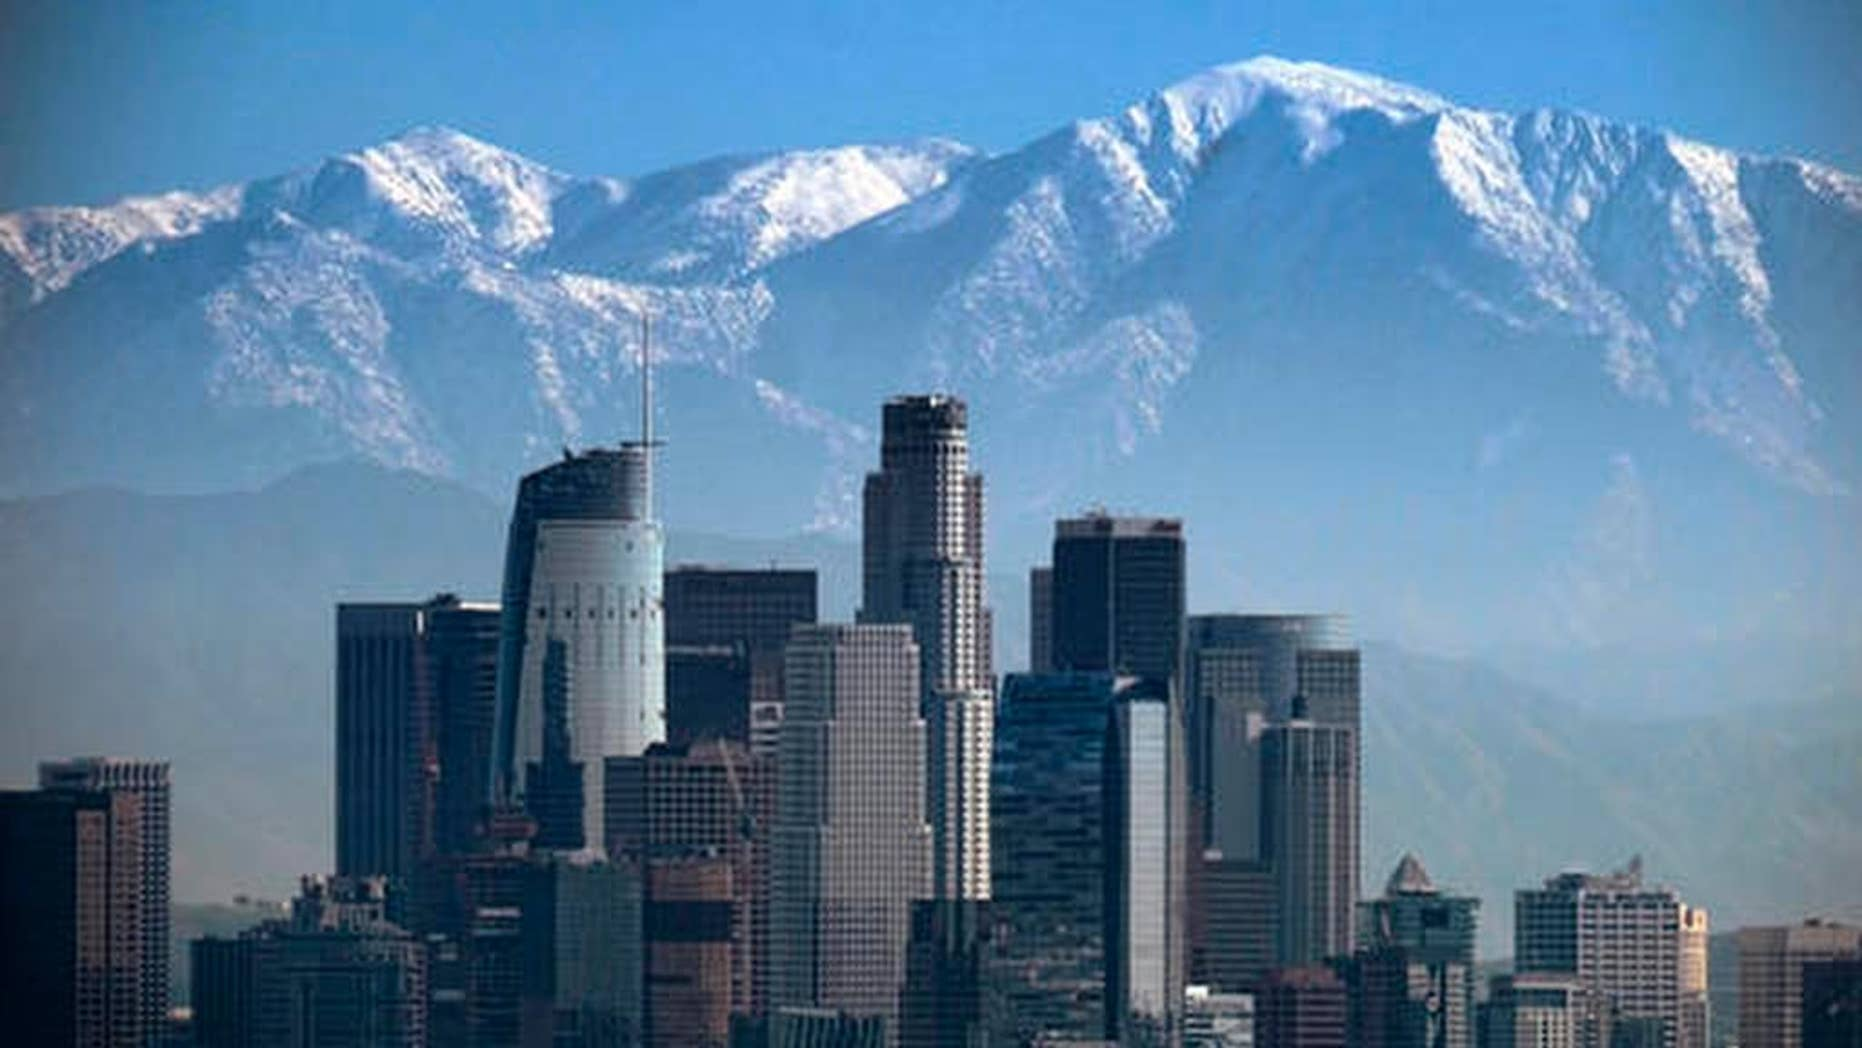 """FILE - This Jan. 25, 2017 file photo shows a snow covered Mount Baldy, the highest peak among the San Gabriel Mountains behind downtown Los Angeles. Searchers have found the body of a veteran hiker who vanished while climbing the 10,000-foot (3,000-meter) mountain just northeast of Los Angeles. Seuk """"Sam"""" Kim, had hiked to the top of Mount Baldy in the San Gabriel Mountains more than 700 times before he went missing last week. (AP Photo/Richard Vogel, File)"""